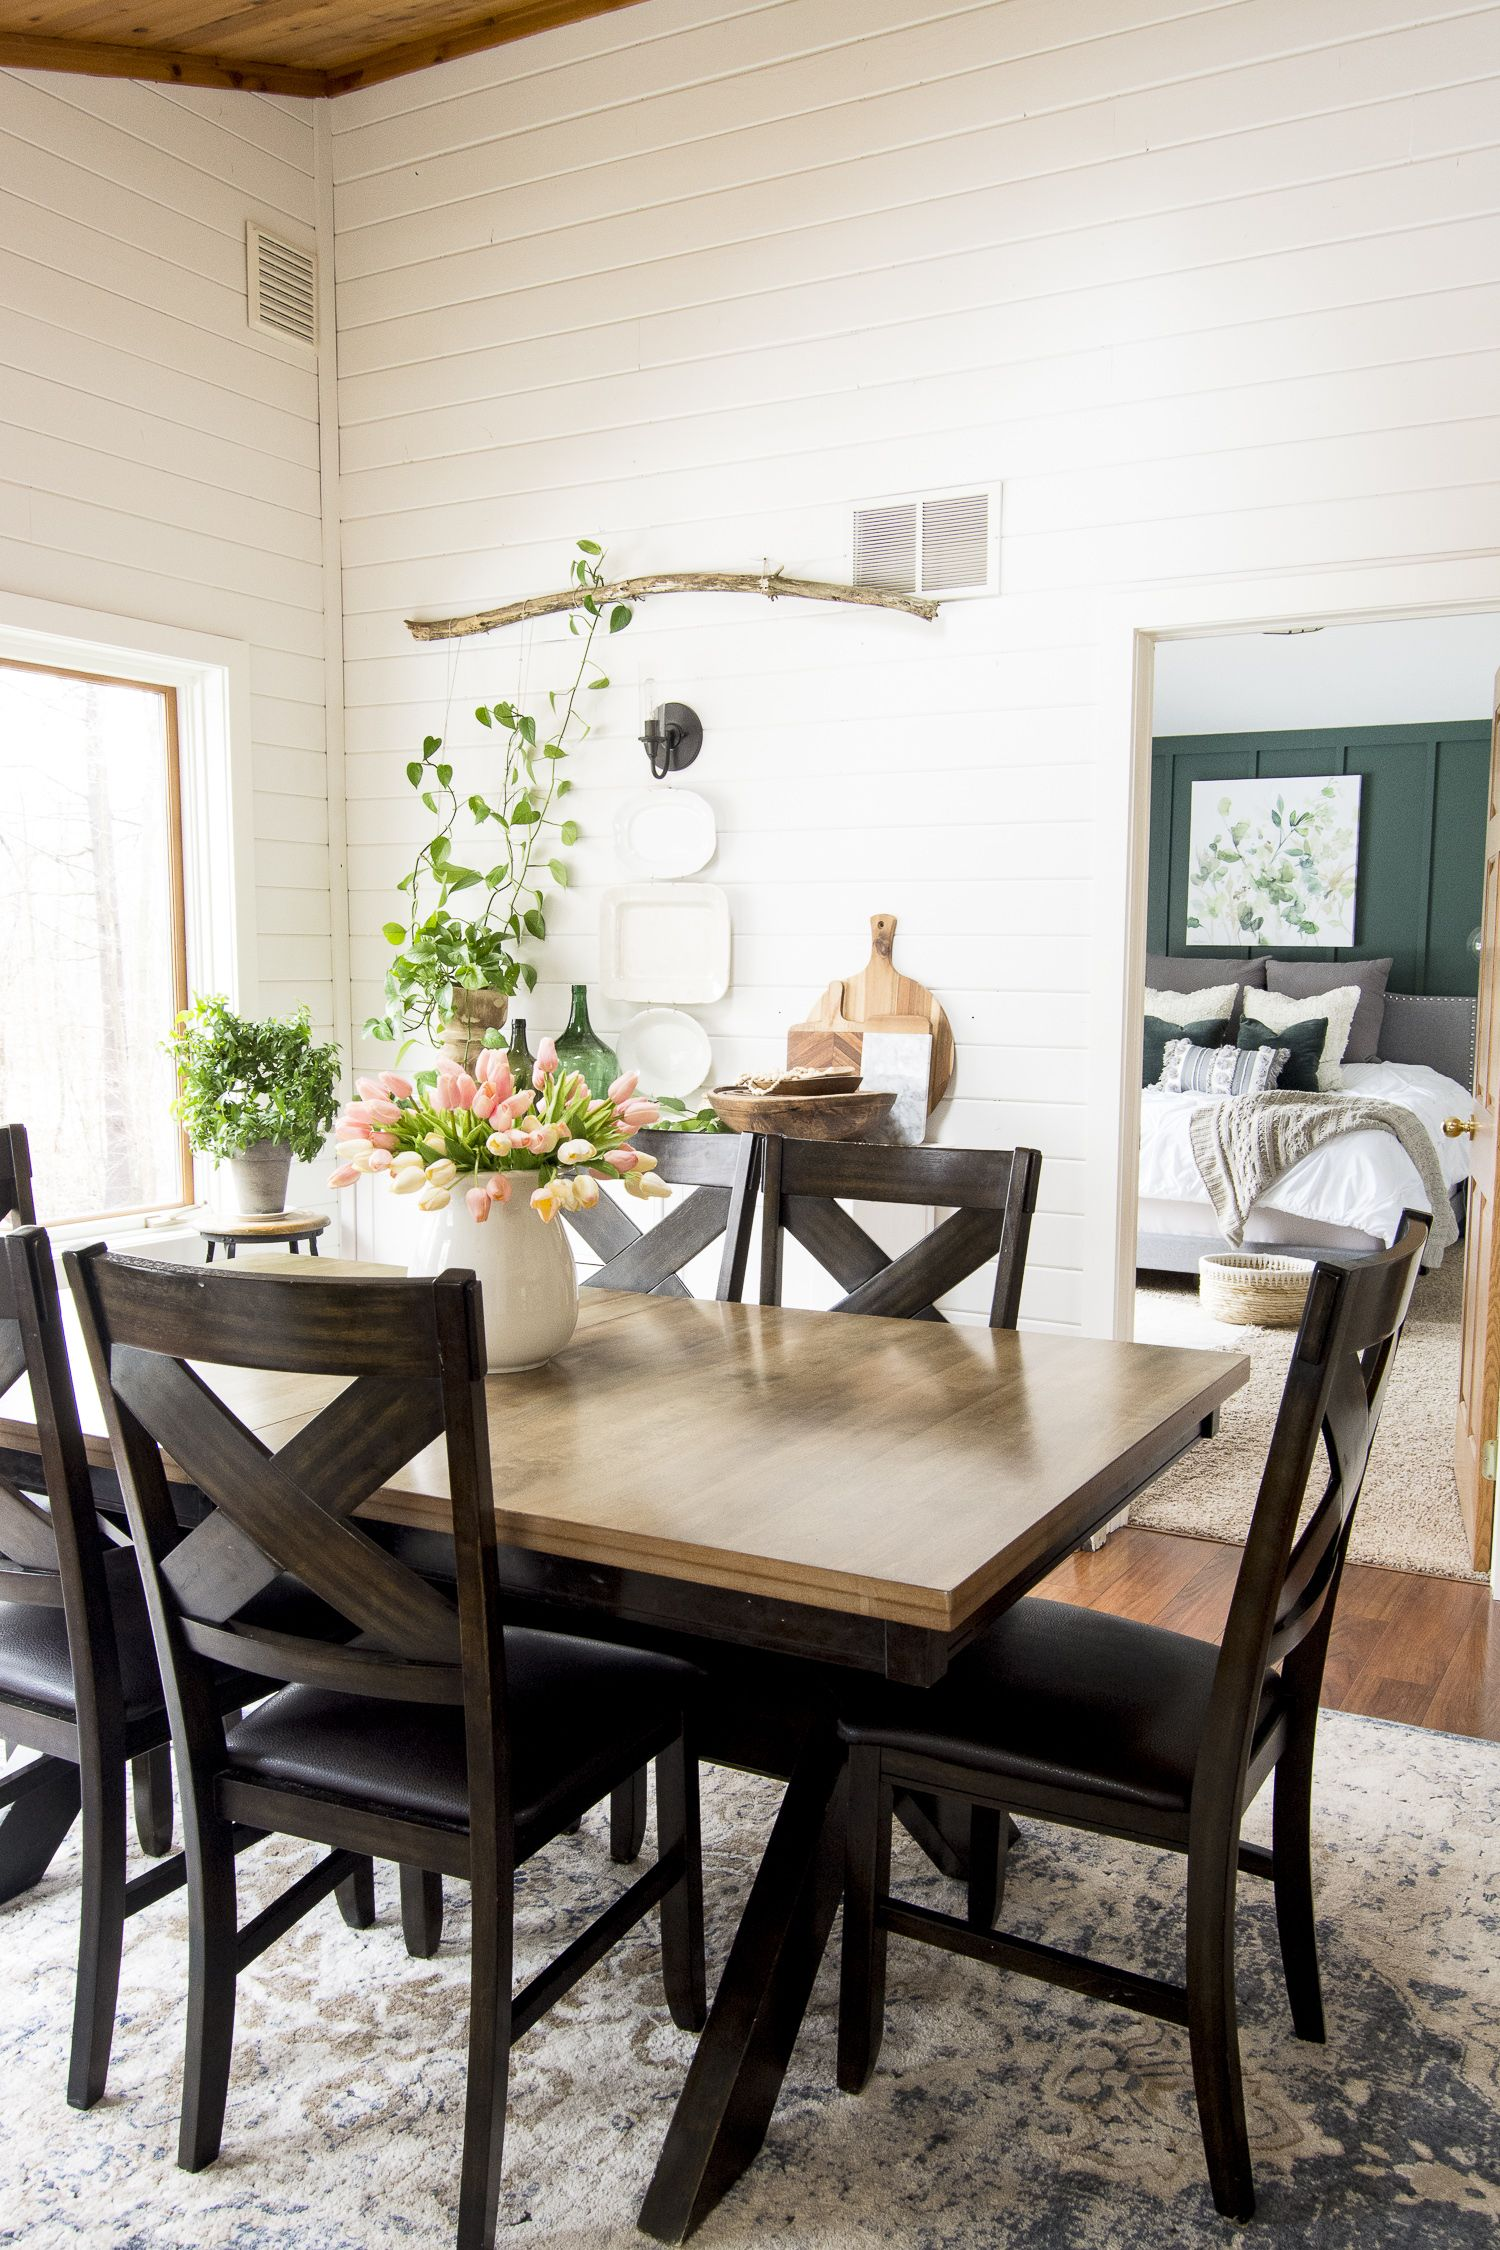 spring vintage farmhouse decor with a boho twist with images dining room remodel dining on boho chic dining room kitchen dining tables id=45204